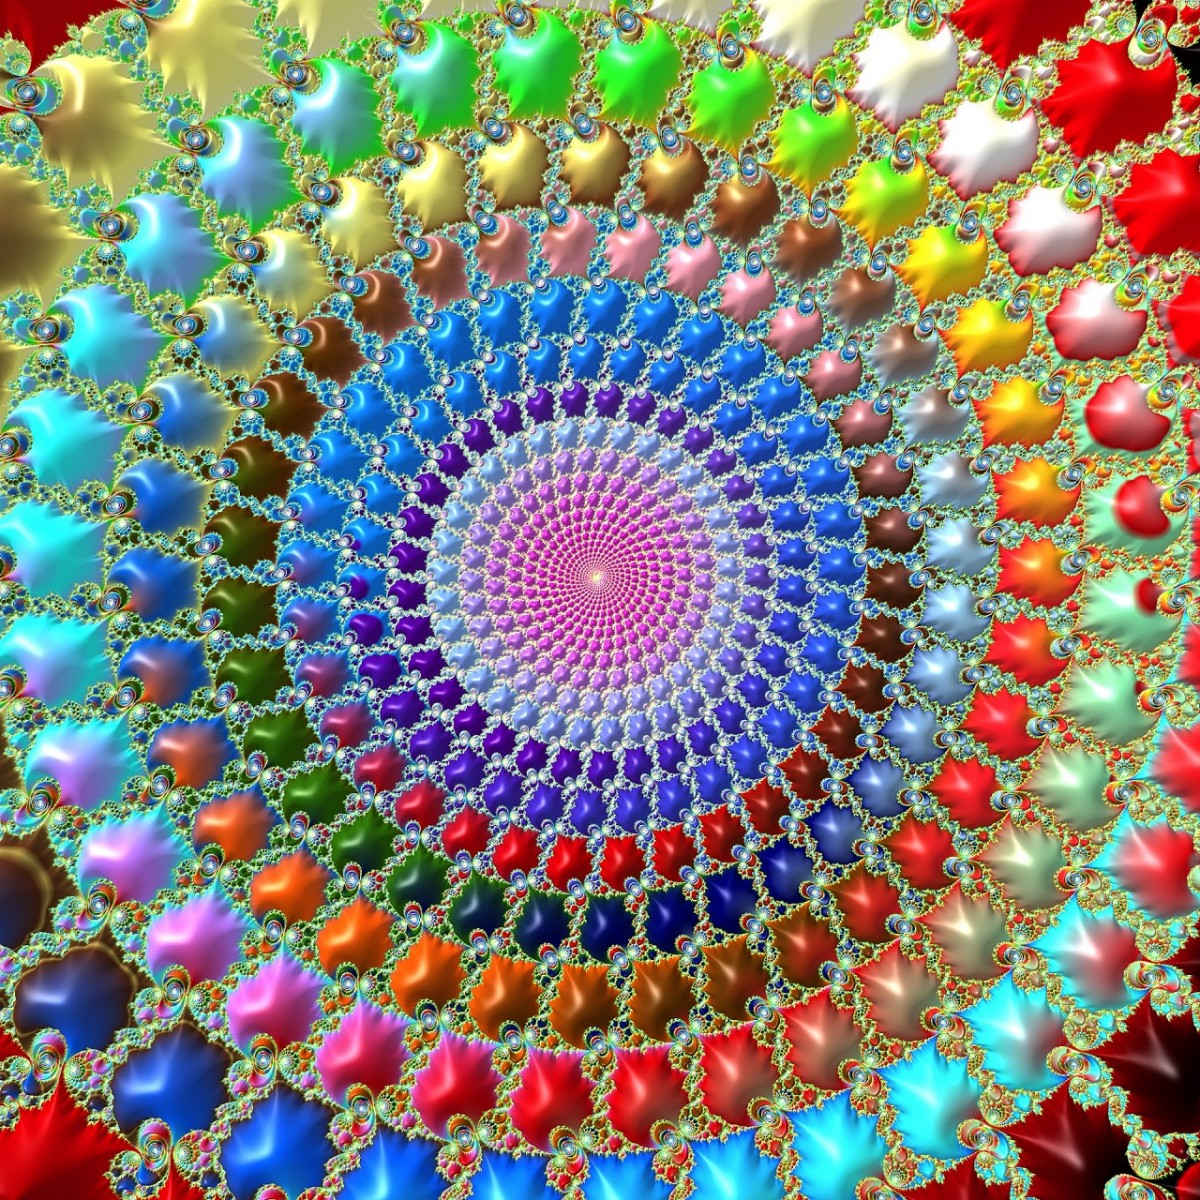 Jigsaw Puzzle Solve jigsaw puzzles online - Rainbow spiral